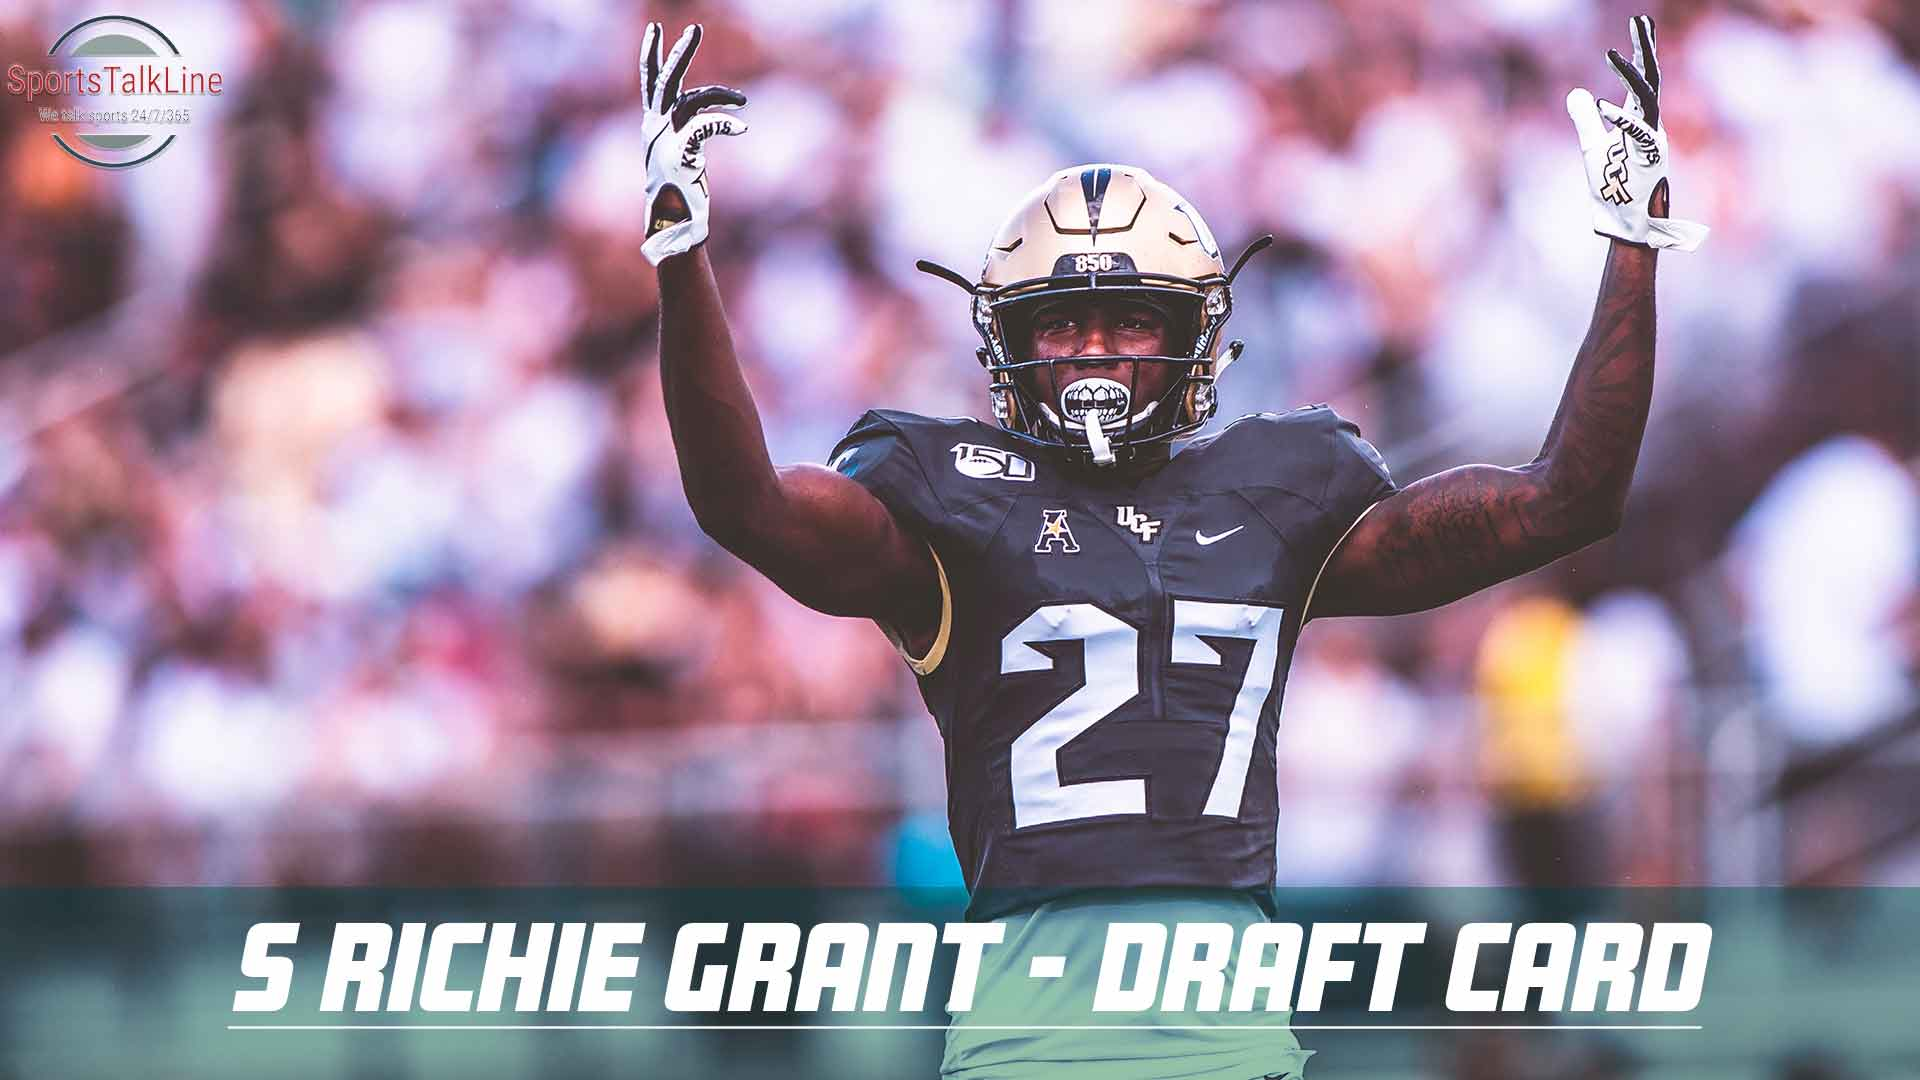 S-Richie-Grant-Draft-Card